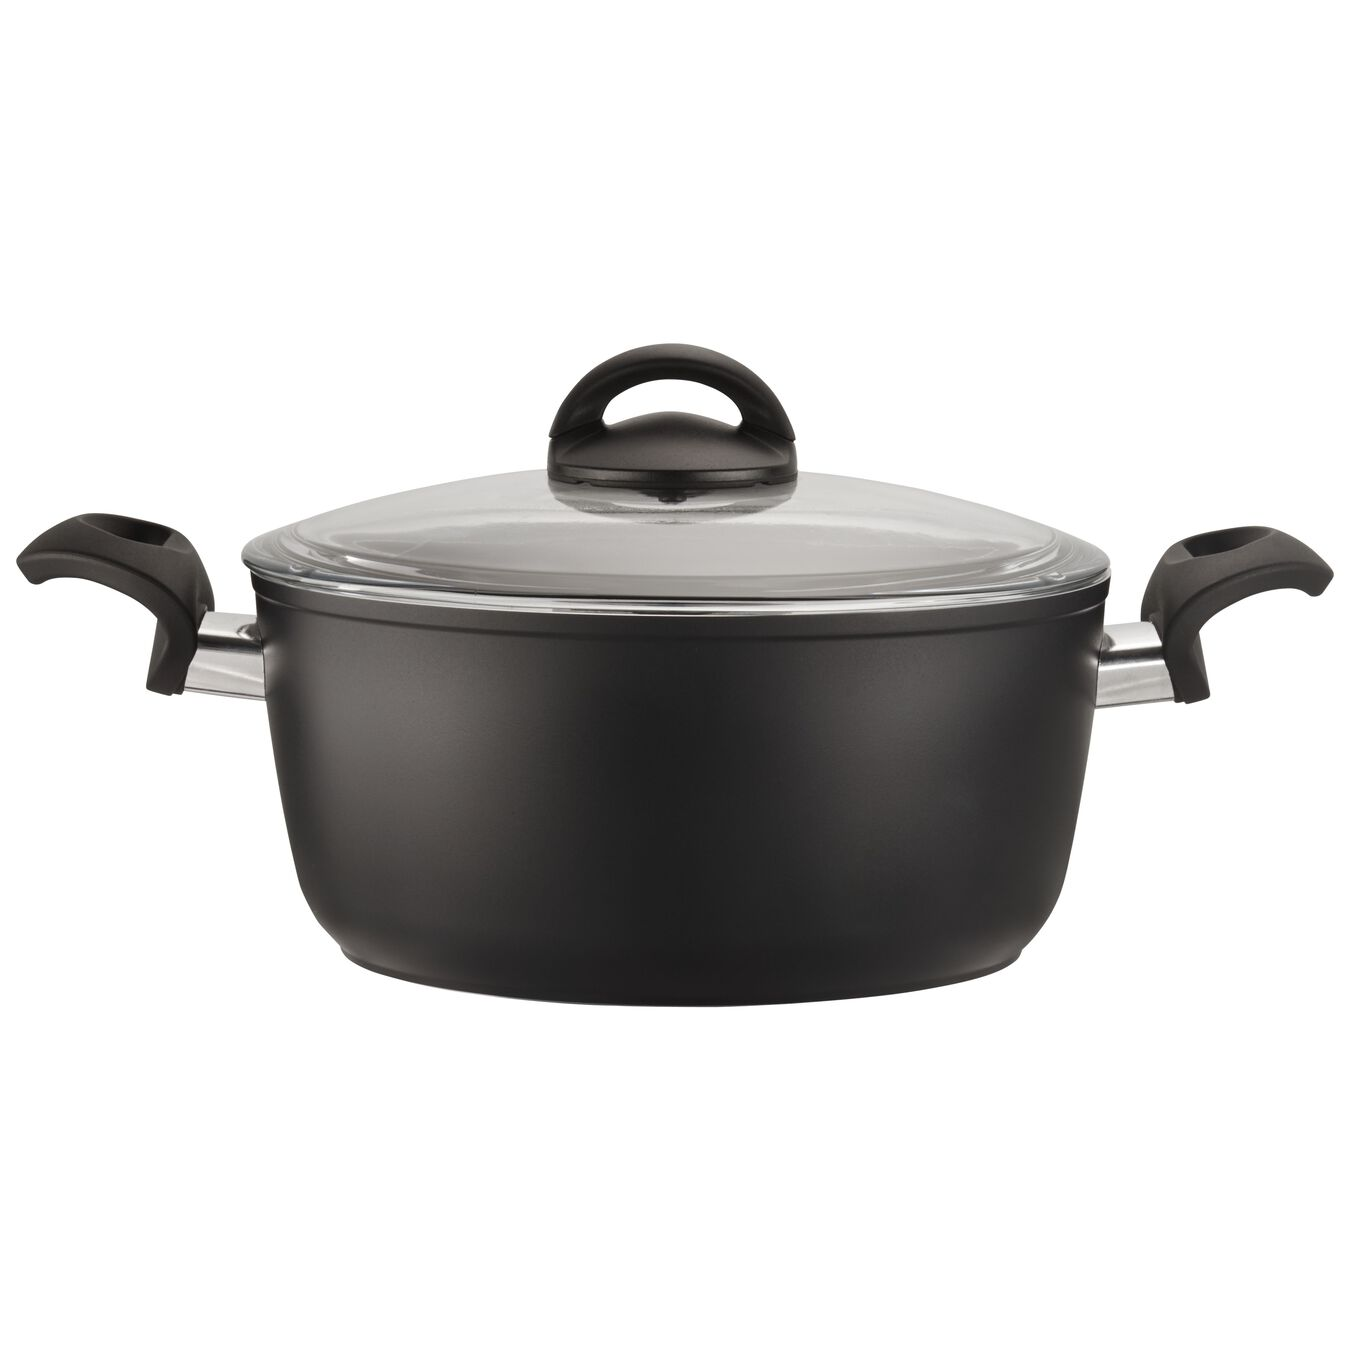 4.8-qt Nonstick Dutch Oven with Lid,,large 4